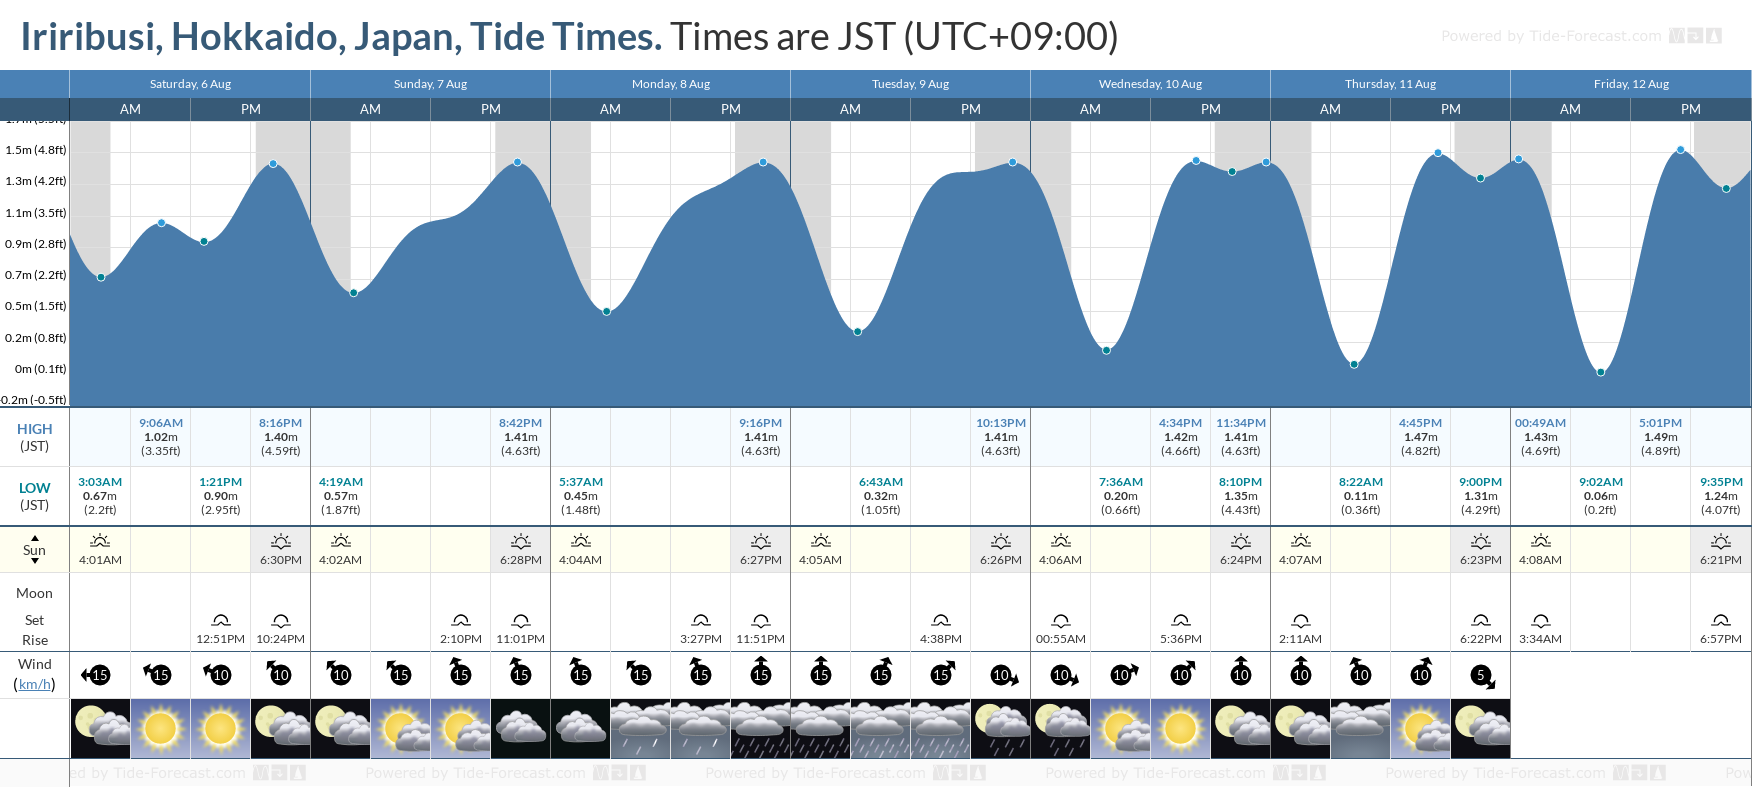 Iriribusi, Hokkaido, Japan Tide Chart including high and low tide tide times for the next 7 days